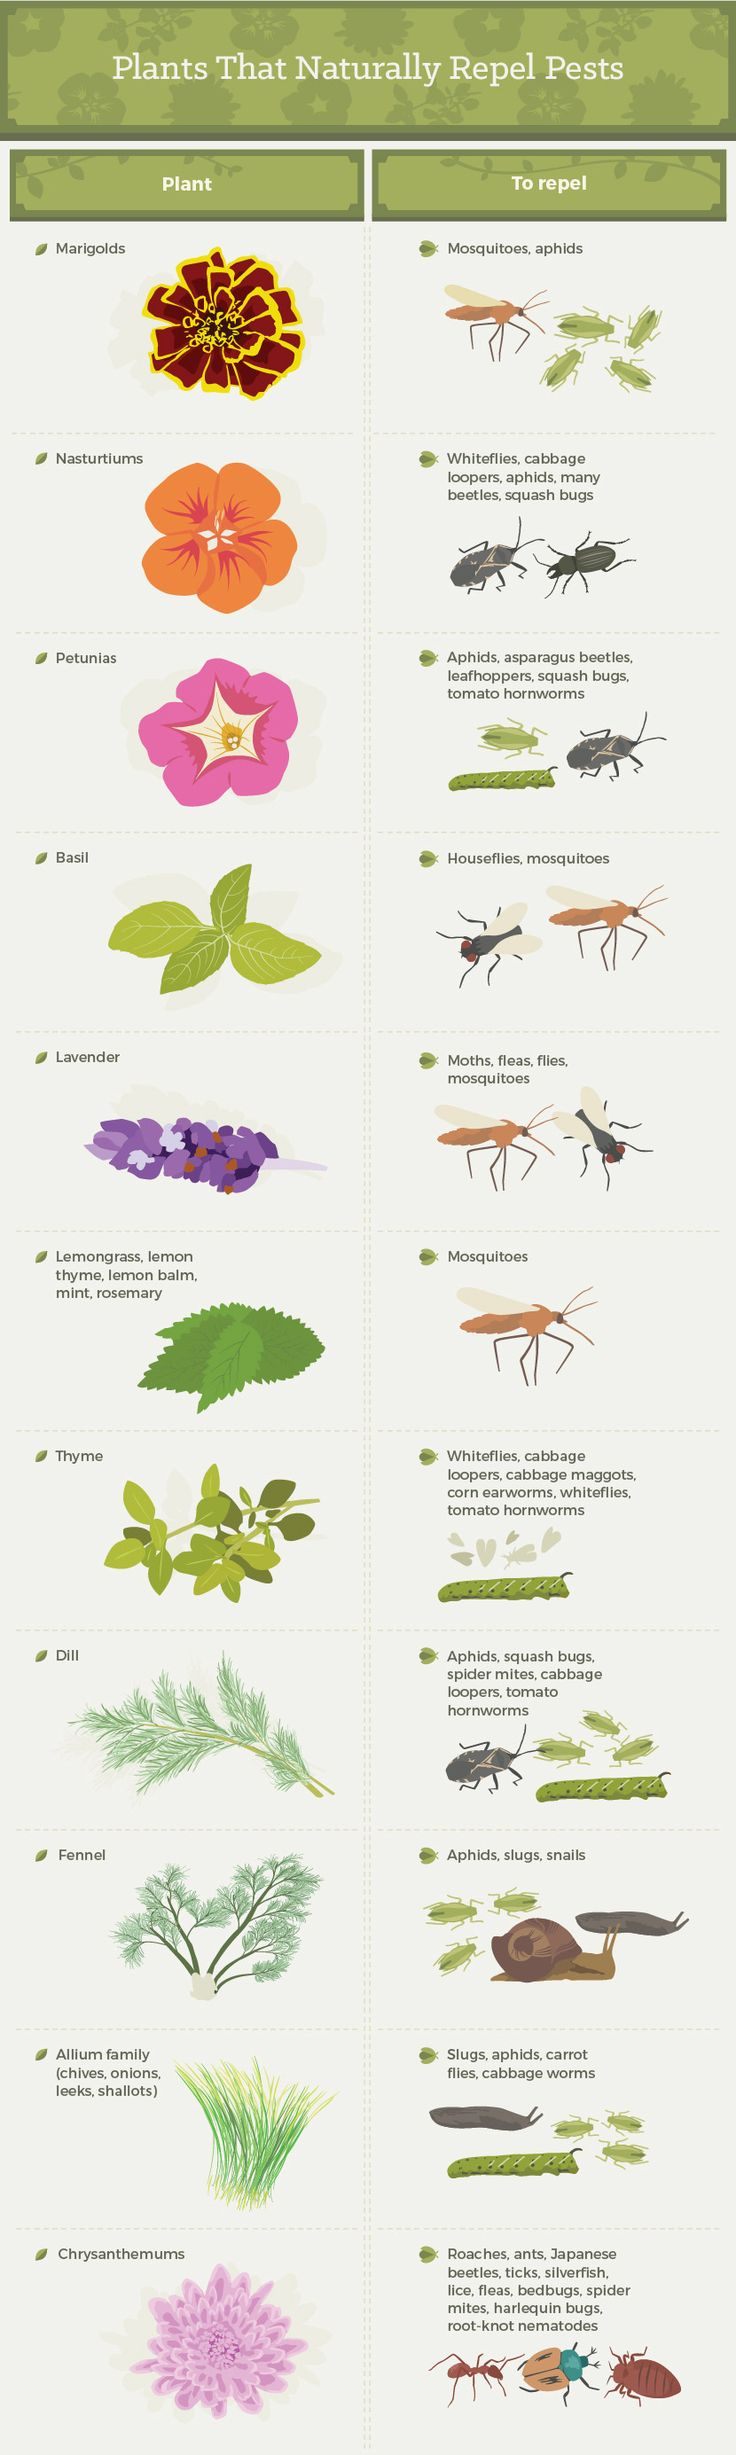 Ensure your garden's health by attracting beneficial predators and keeping certain pests out. All you need to know about garden pests and how to get rid of them can be found on this post by Fix. Click in to learn more.